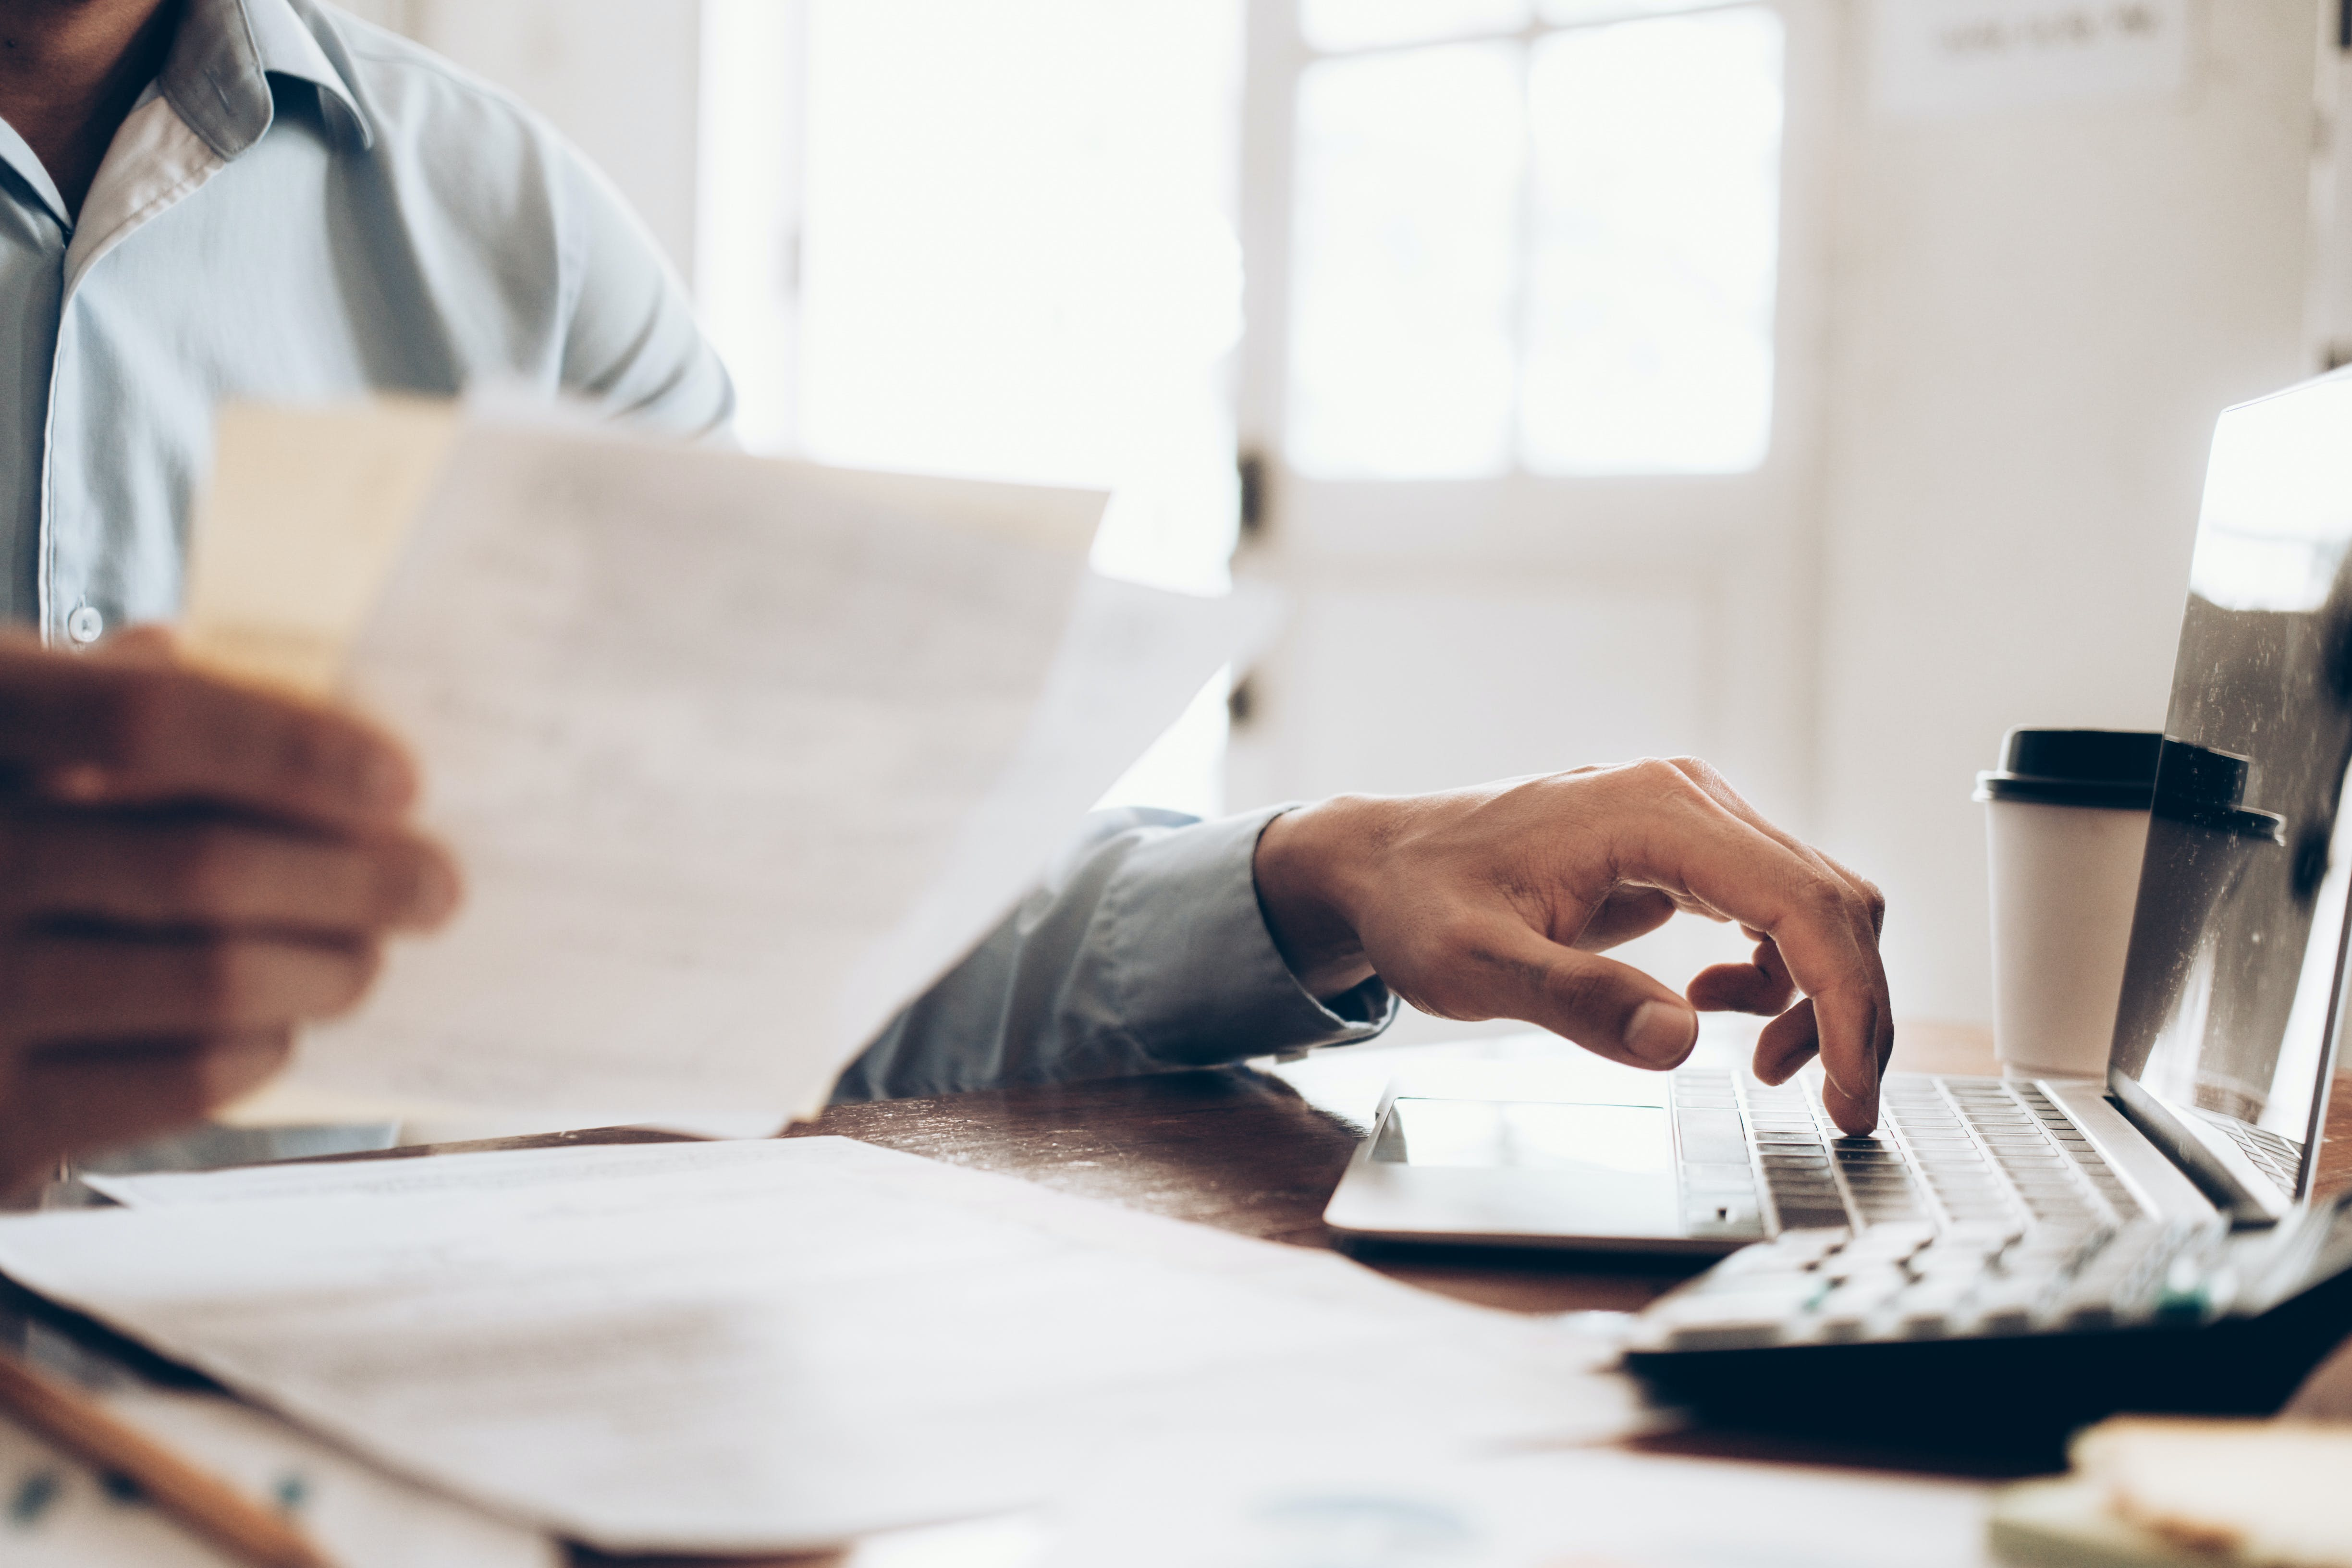 Follow up on unpaid invoices during COVID-19 to manage cash flow